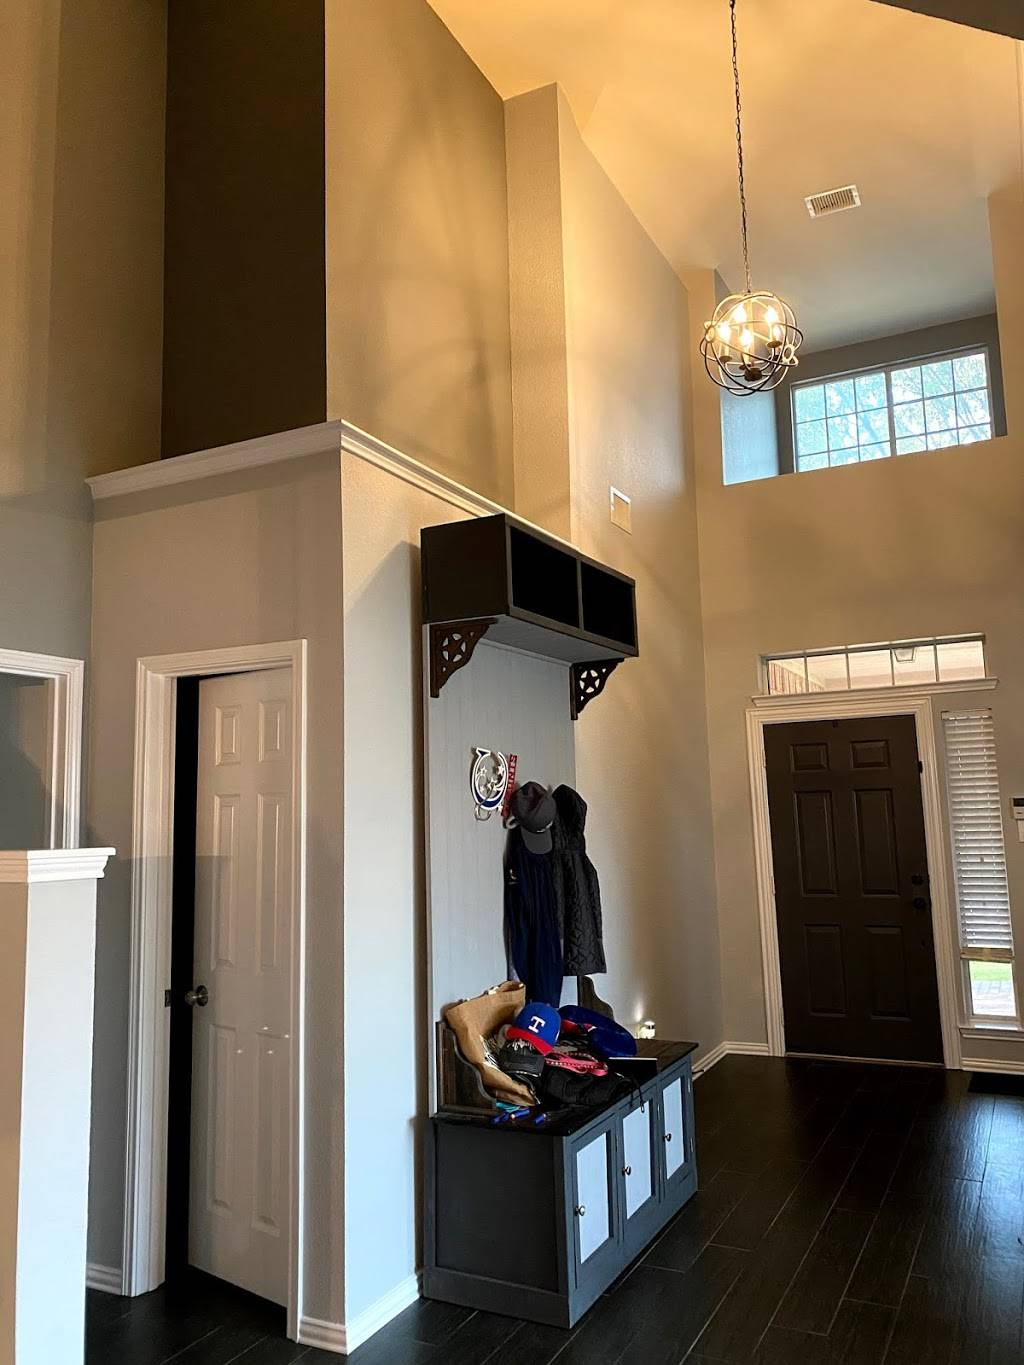 Carroll Custom Painting - painter    Photo 2 of 4   Address: 222 Lakeview Dr, Rockwall, TX 75087, USA   Phone: (469) 964-9573